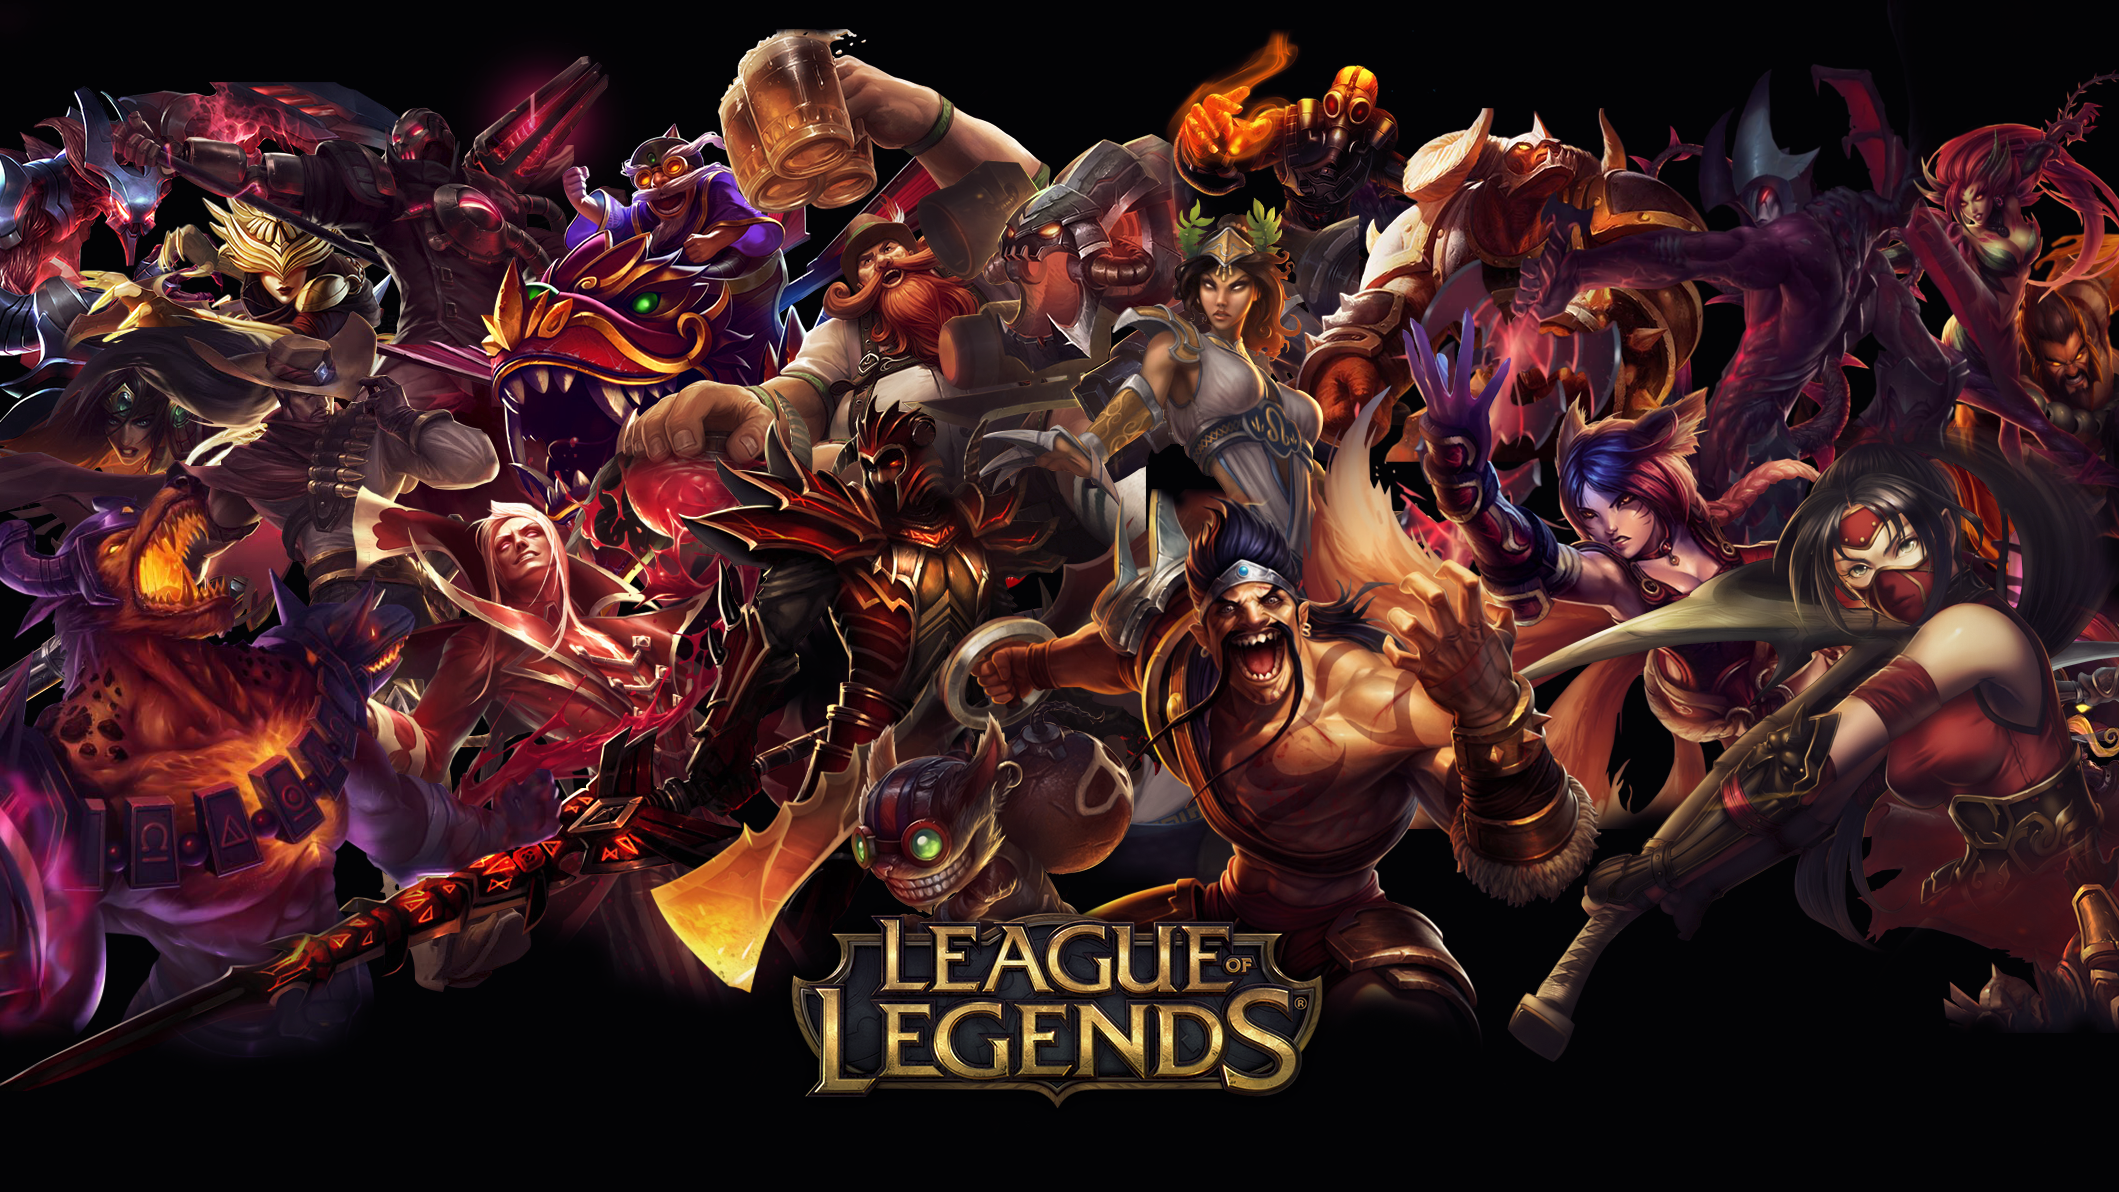 League of Legends Beginners Guide – Learn How to Play League of Legends